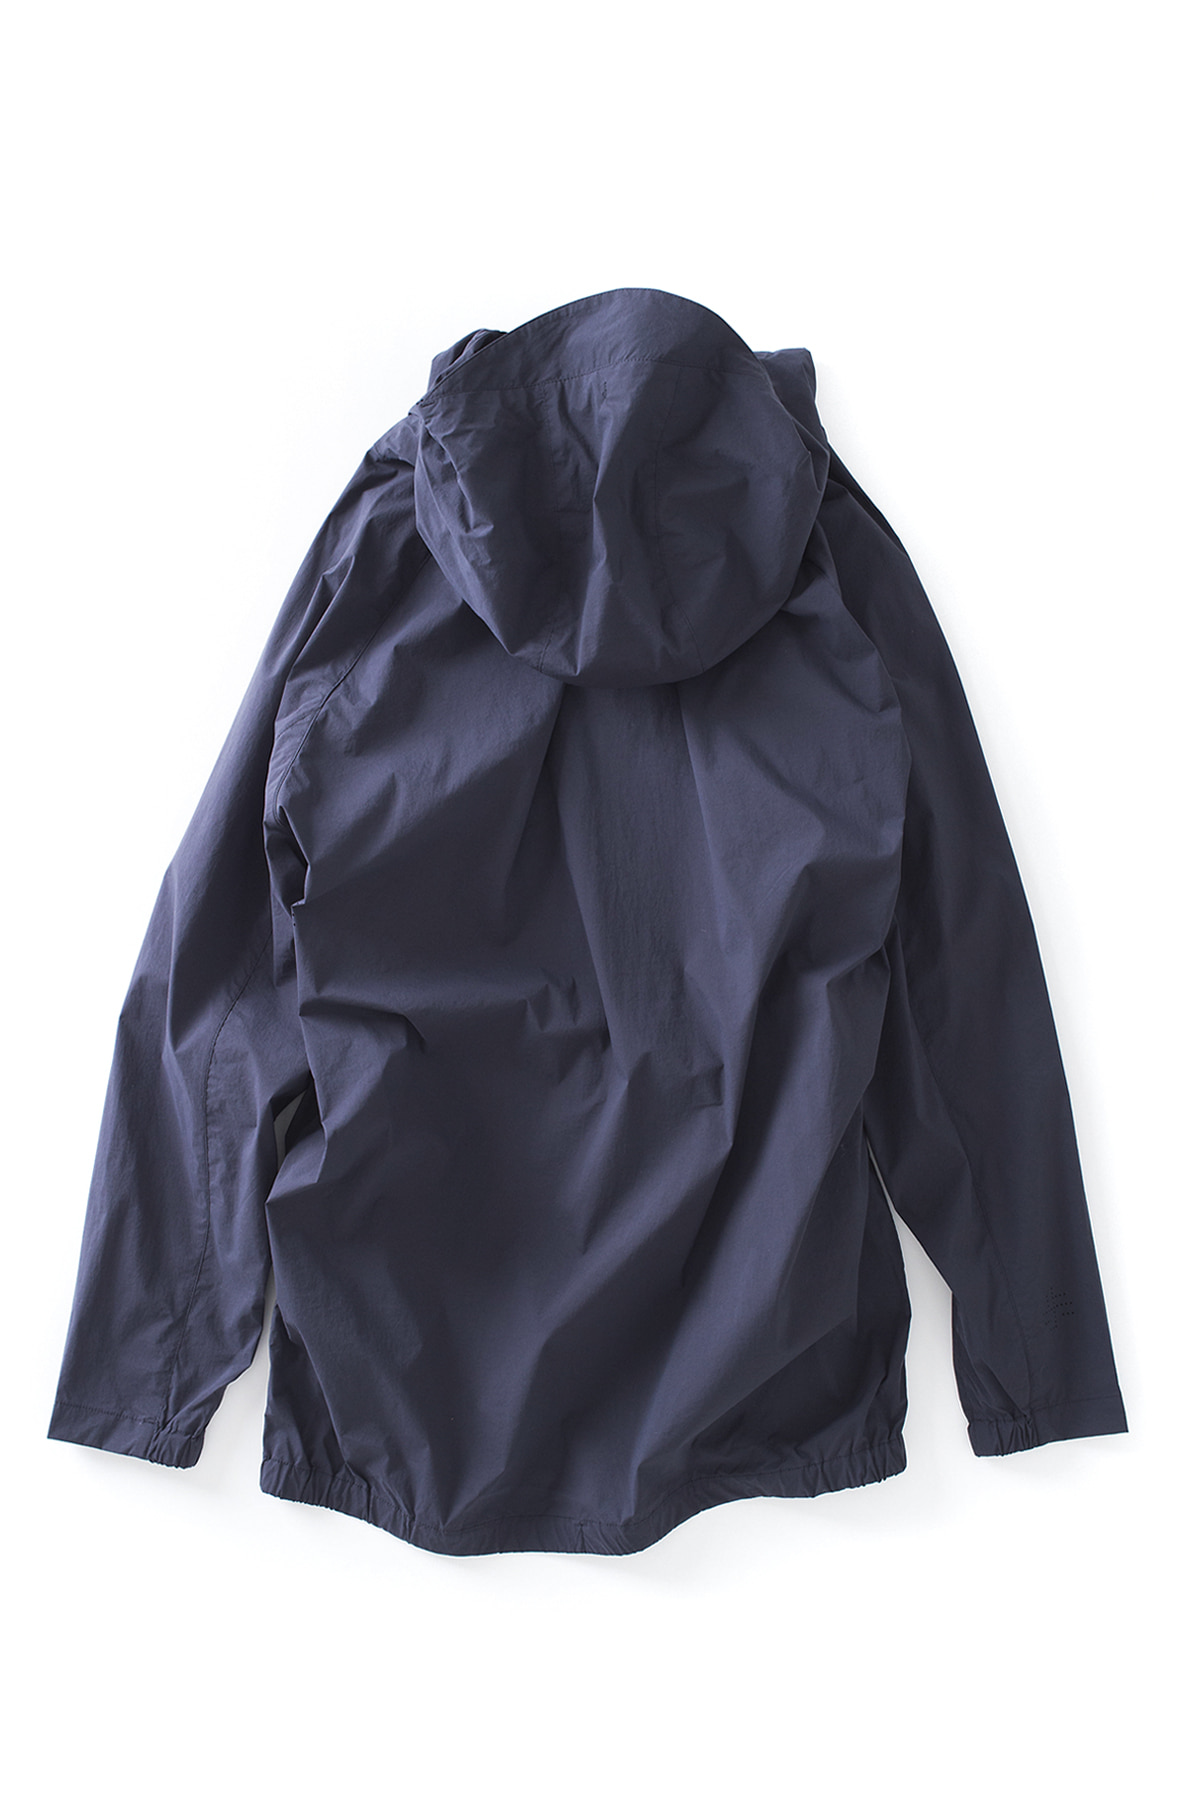 alk phenix : Zak Anorak / Karu Stretch (Navy)